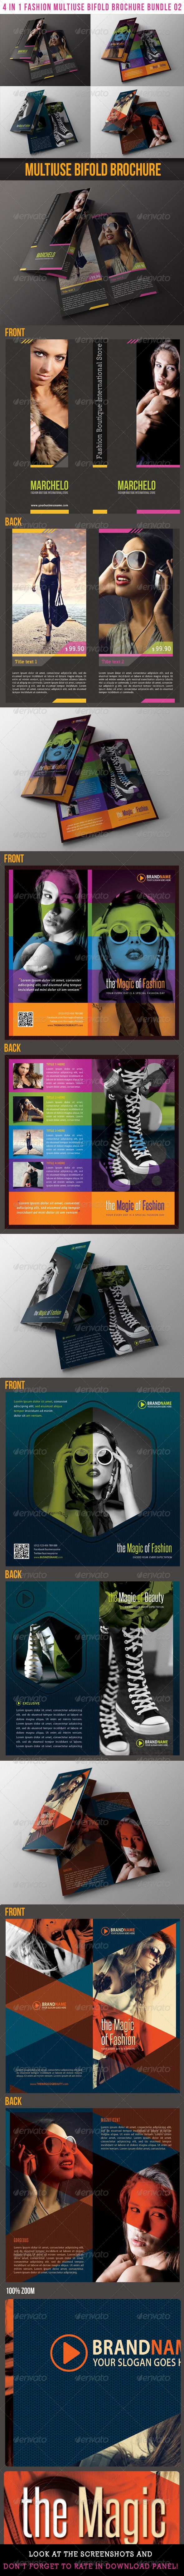 A clean, crisp, high impact, multiuse PSD brochure Template Layouts, perfect for advertisement, presentation or product promotion!